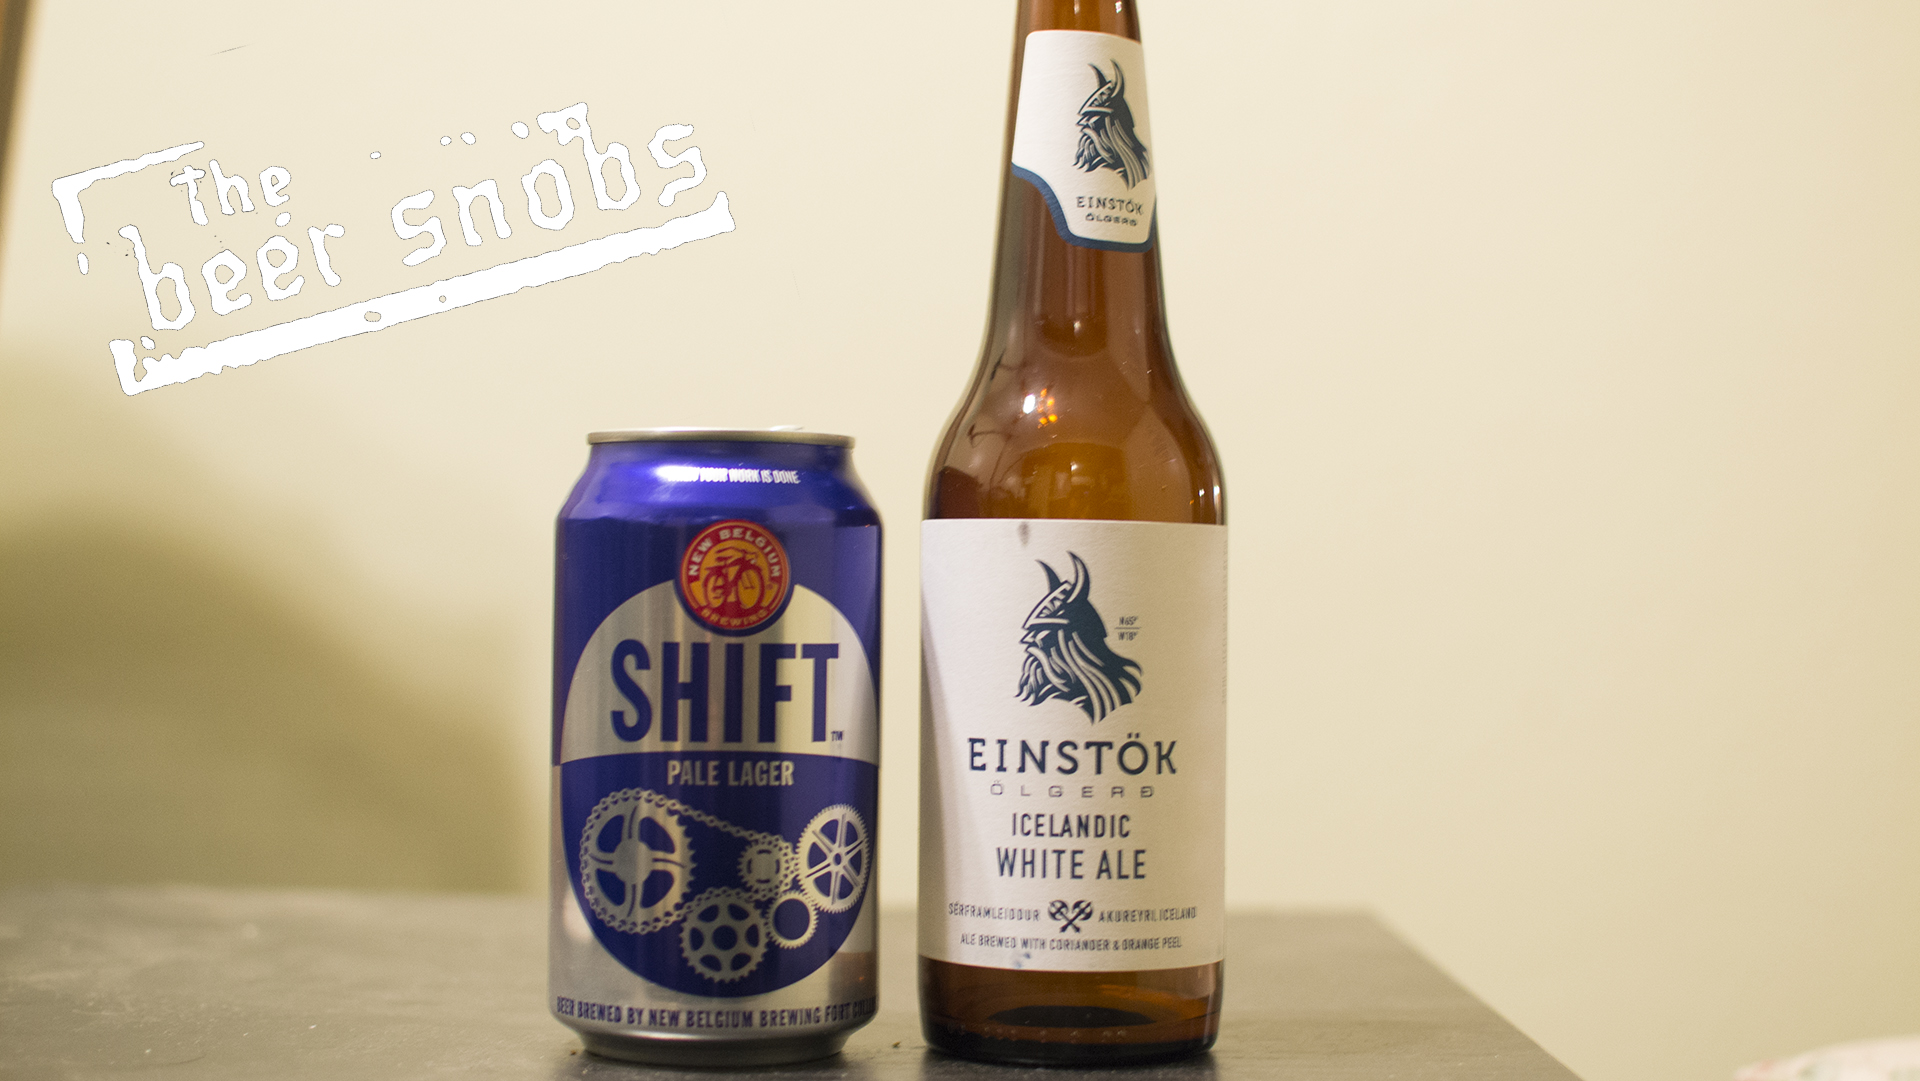 New Belgium Shift and Einstock Icelandic White Ale